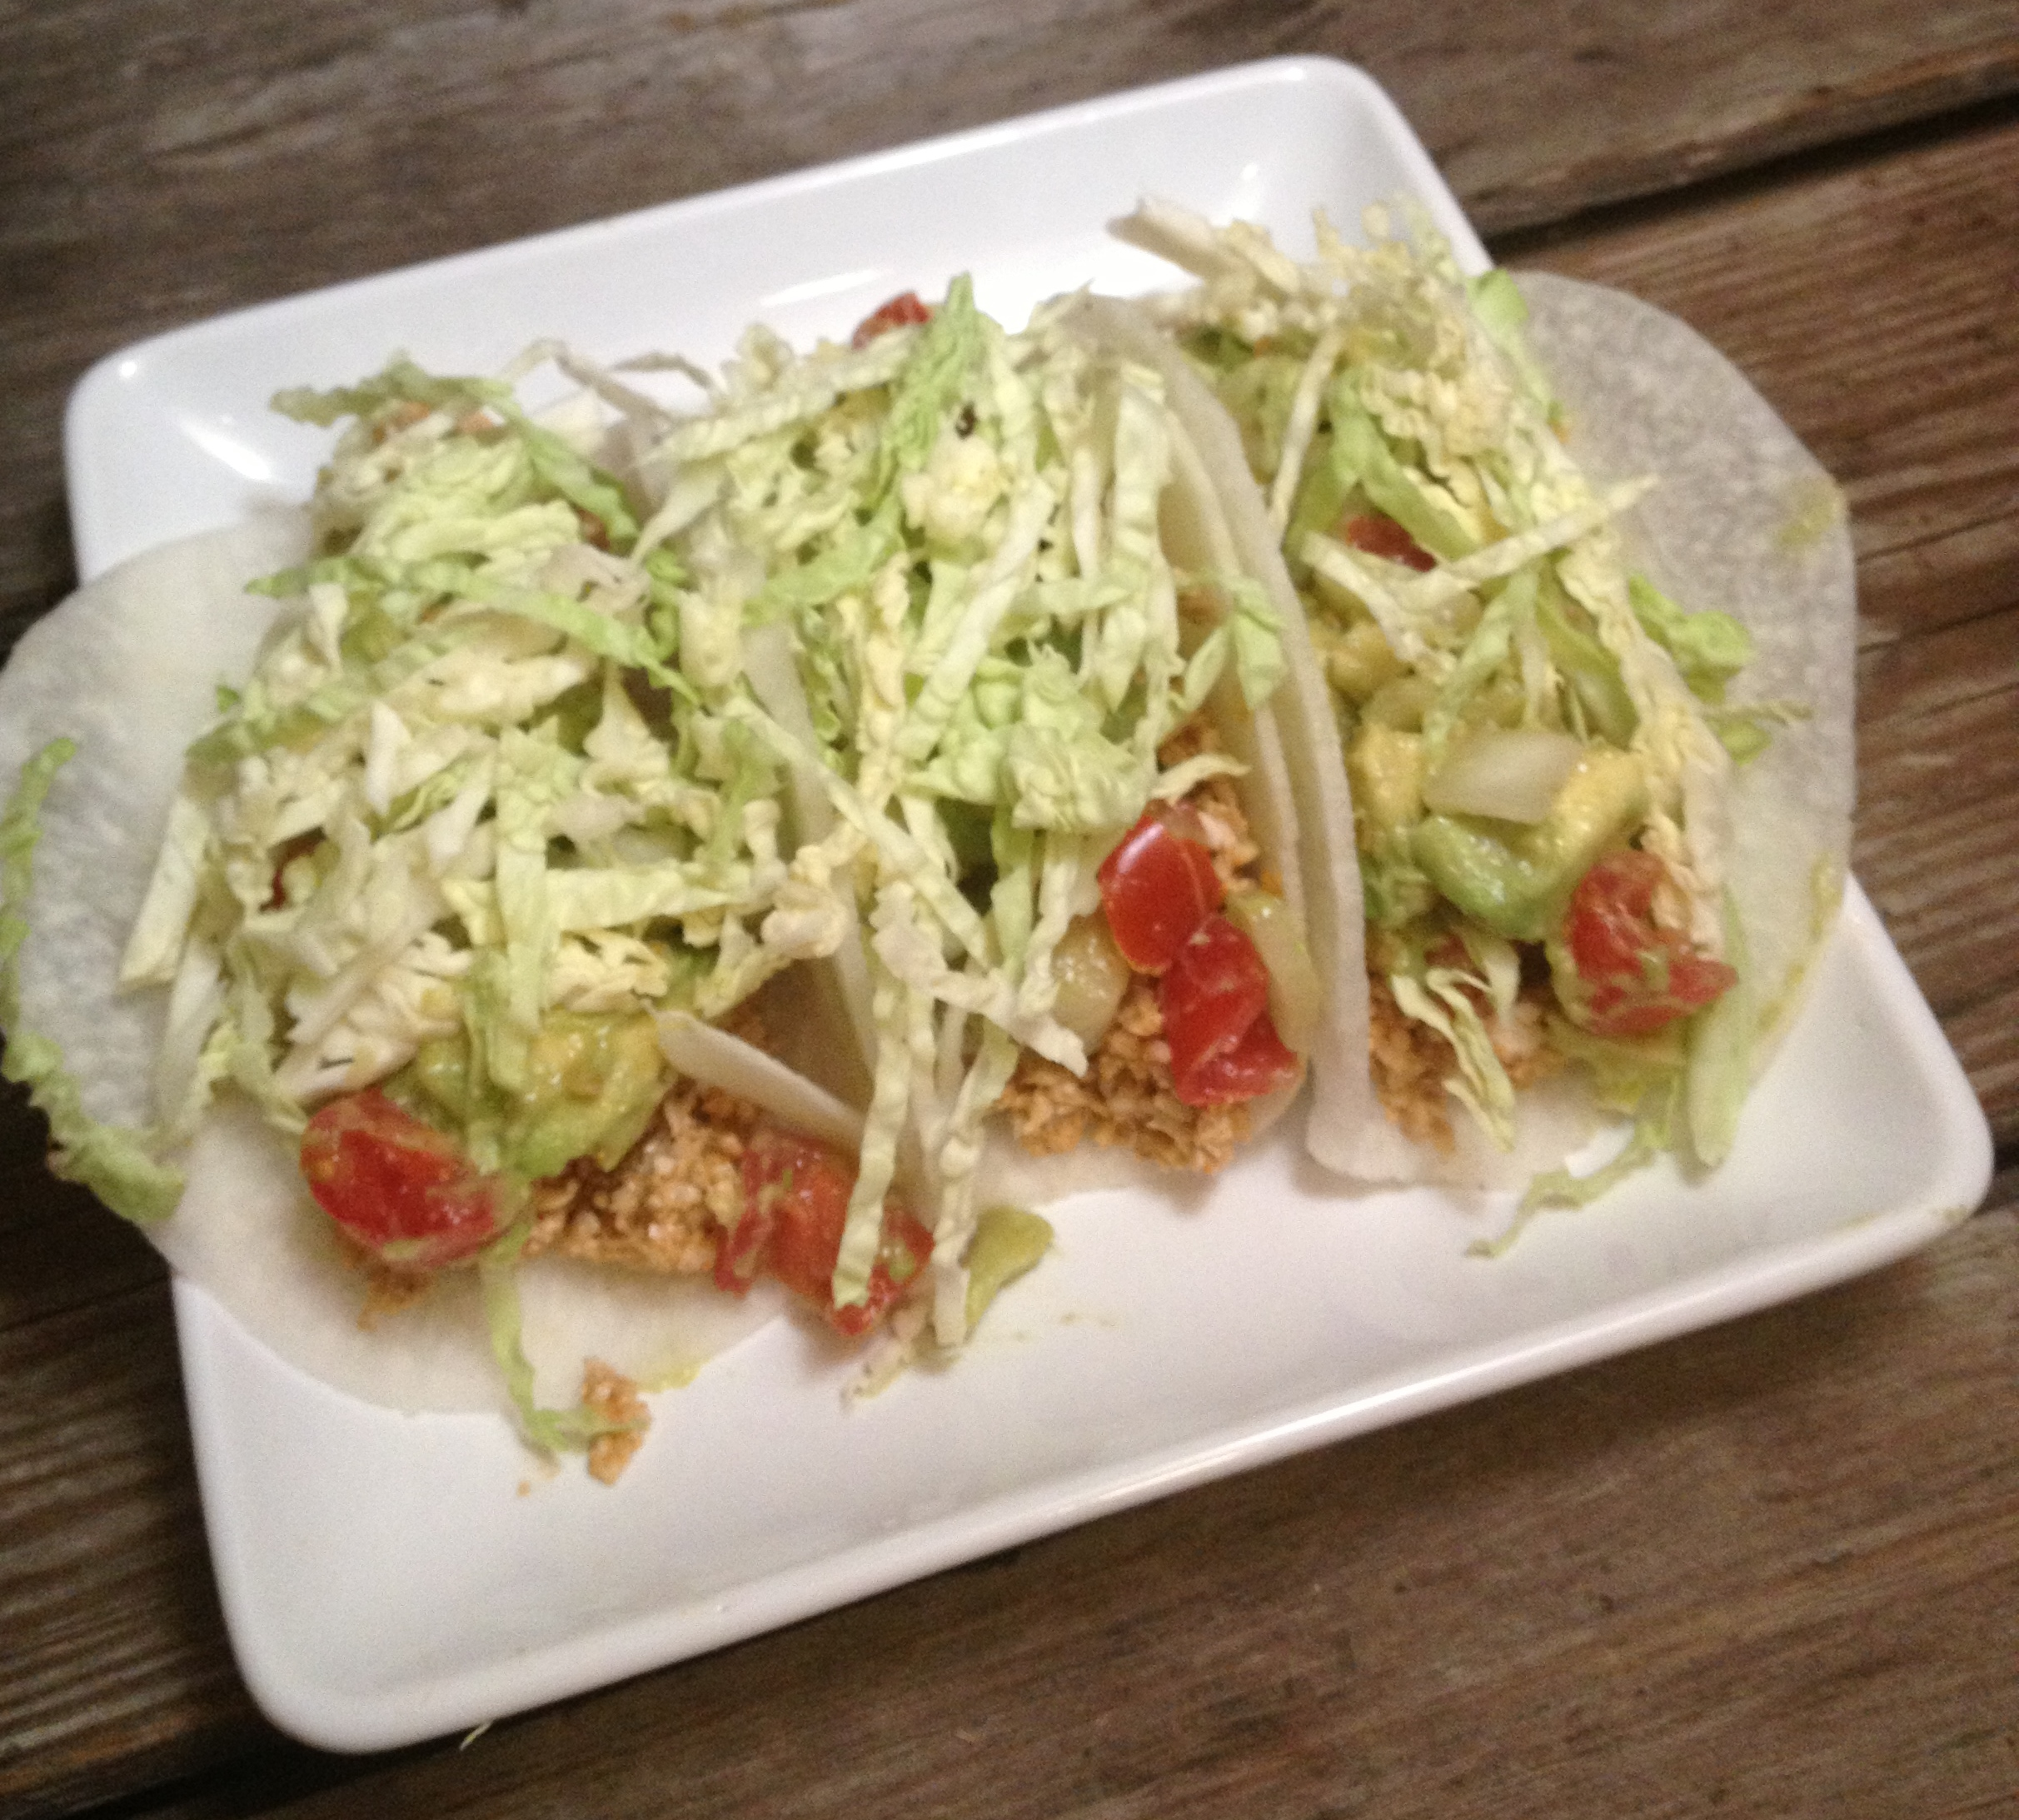 jicama tacos with sunflower filling